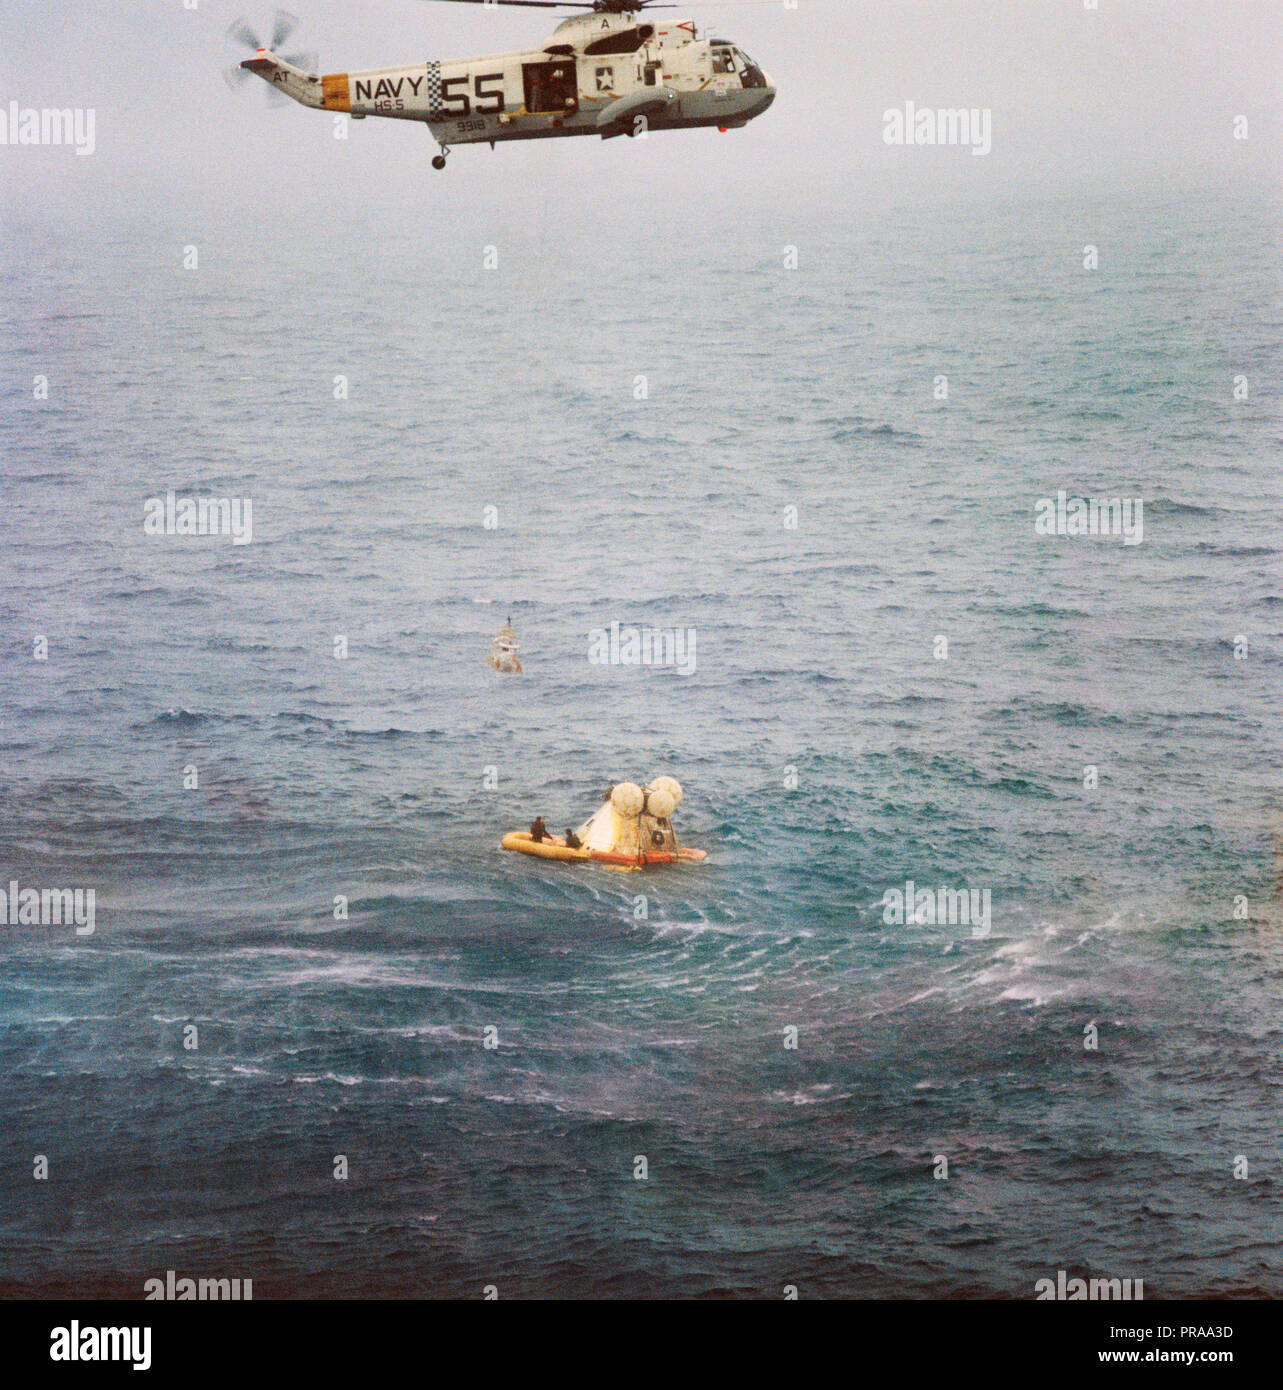 A member of the Apollo 7 crew is hoisted up to a recovery helicopter from the USS Essex during recovery operations. The Apollo 7 spacecraft splashed down at 7:11 a.m., Oct. 22, 1968, approximately 200 nautical miles south-southwest of Bermuda. Photo credit: NASA - Stock Image